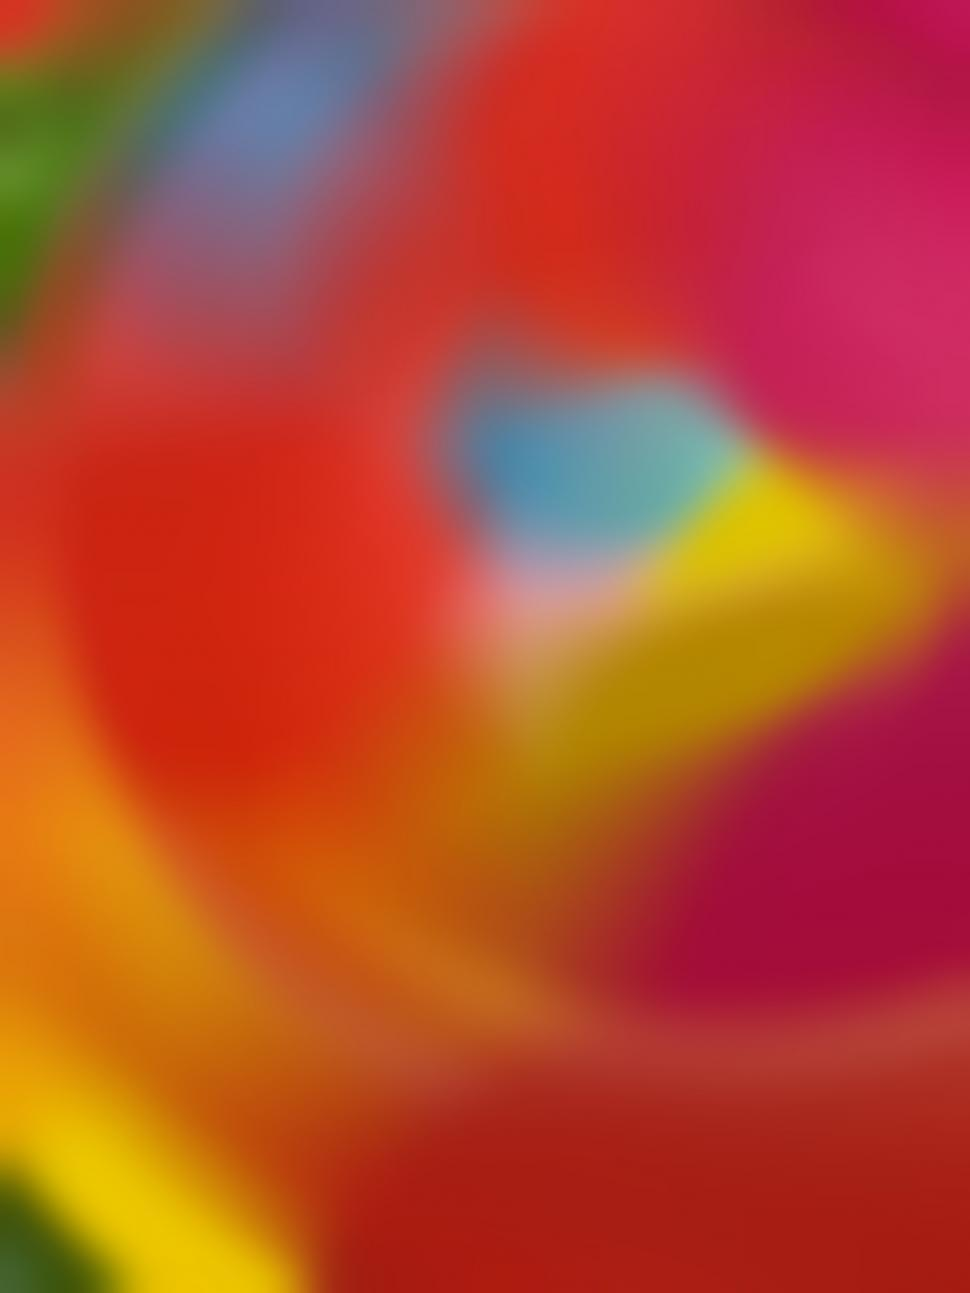 Download Free Stock Photo of Colorful Blurry Abstract Background